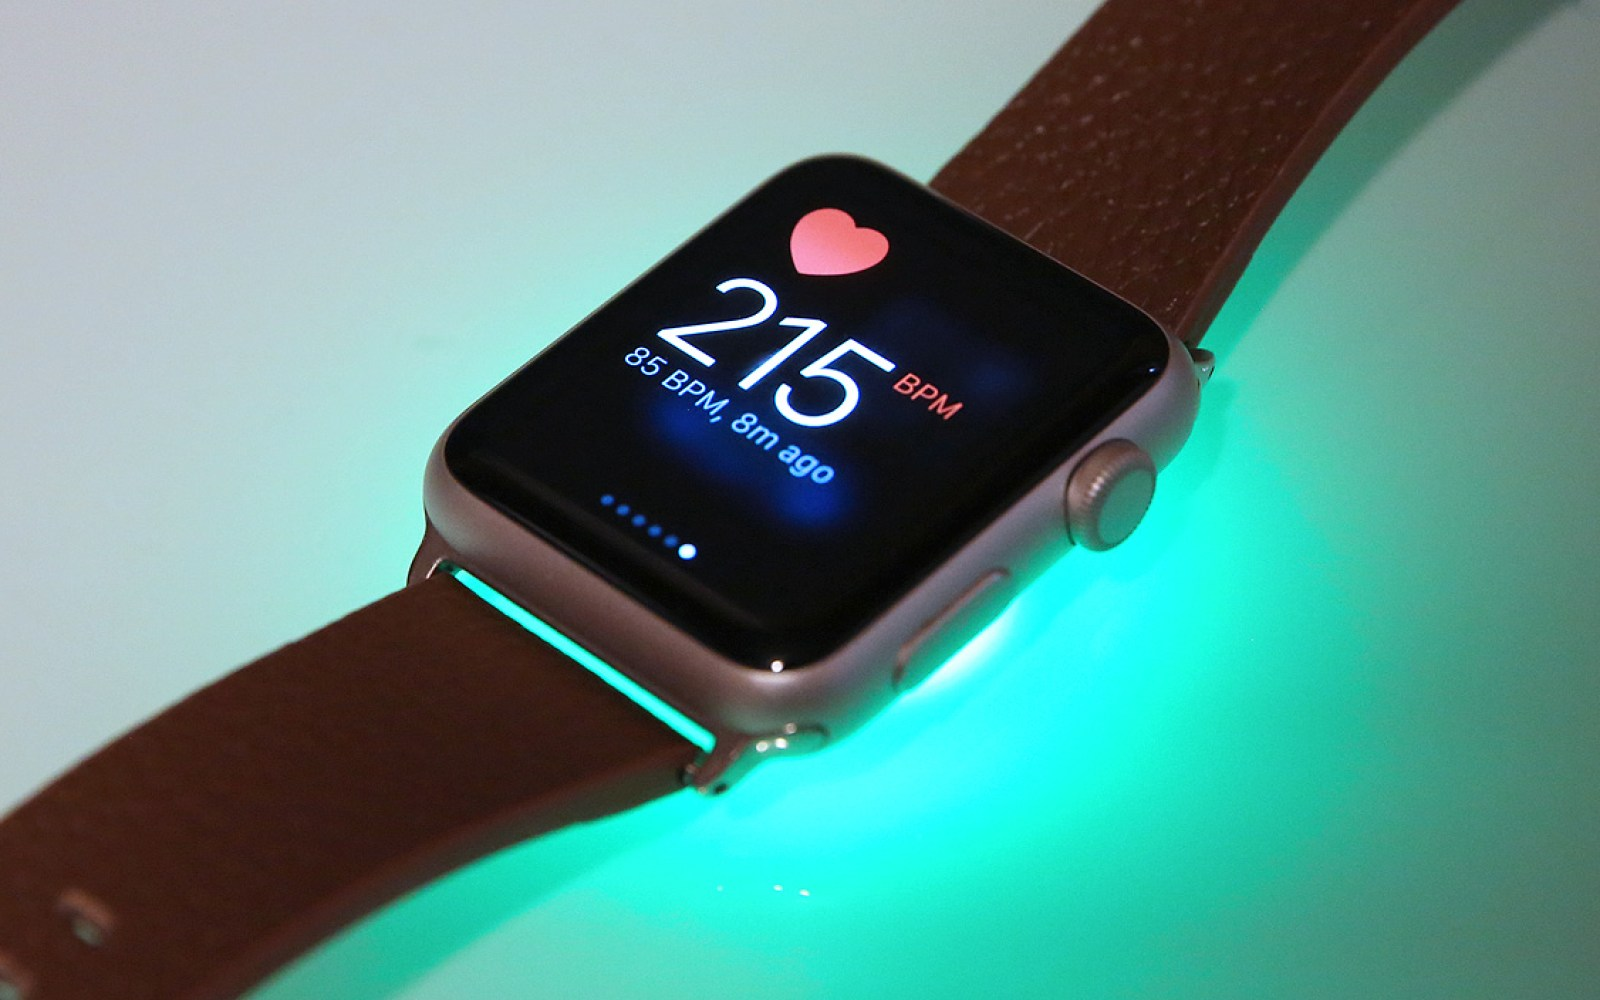 Opinion: Apple Watch should double down on health sensors, battery life + waterproofing